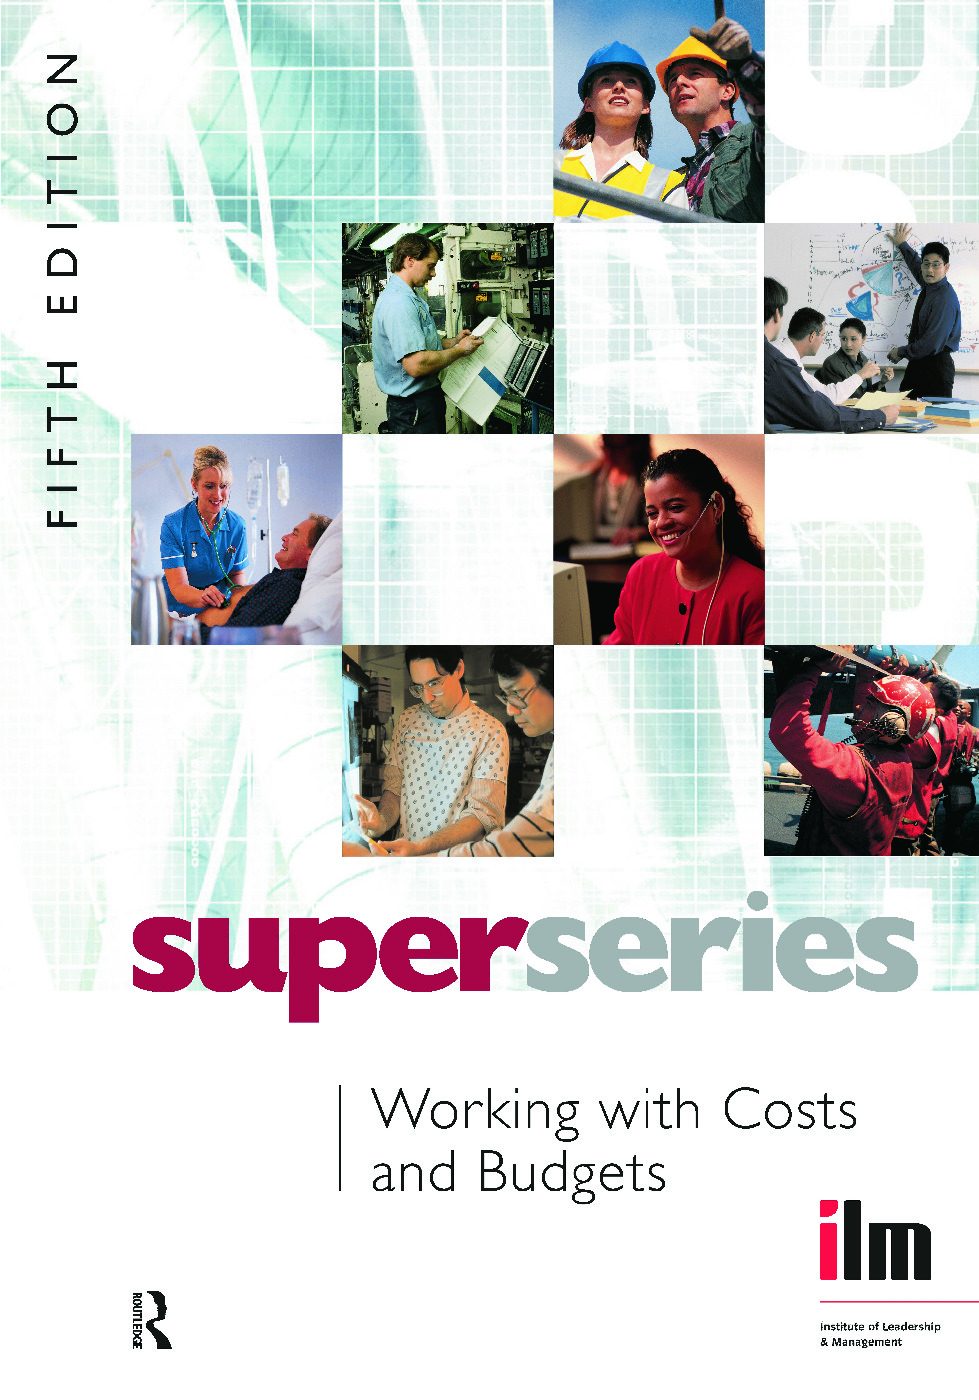 Working with Costs and Budgets book cover